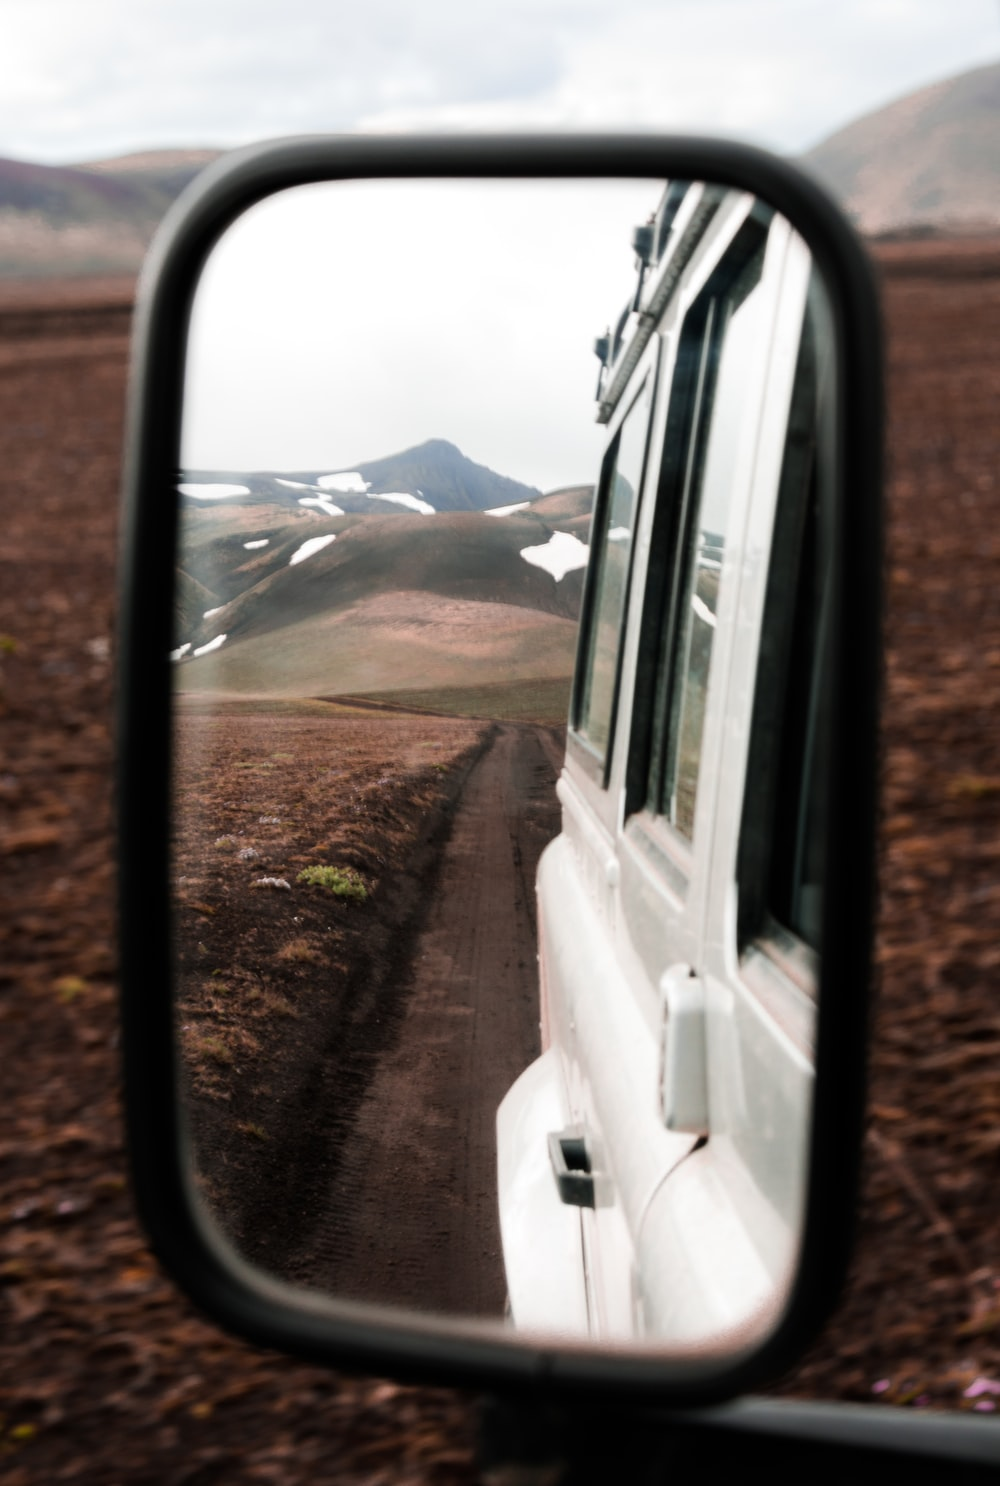 mountain range seen from vehicle wing mirror